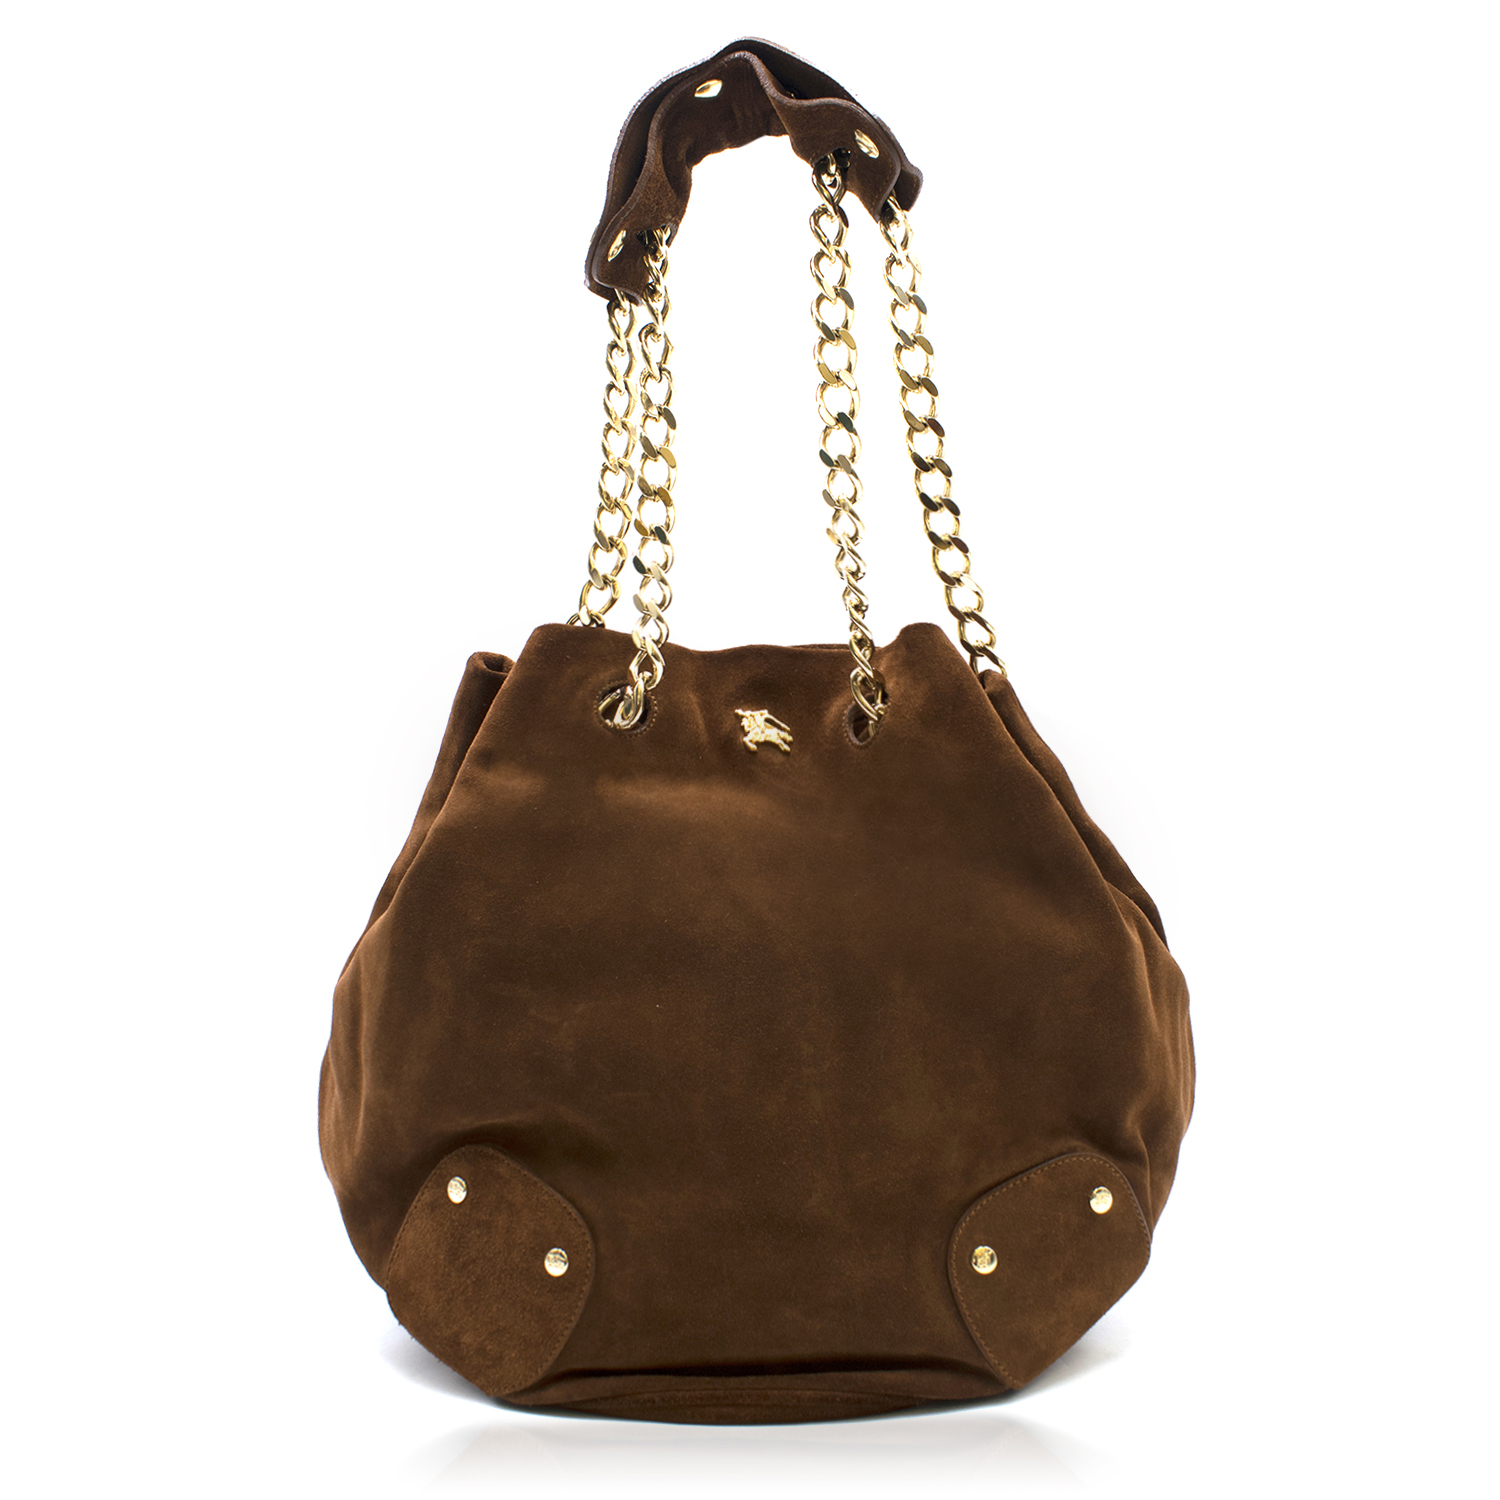 58f75b7e5b Burberry Brown Suede Bucket Bag